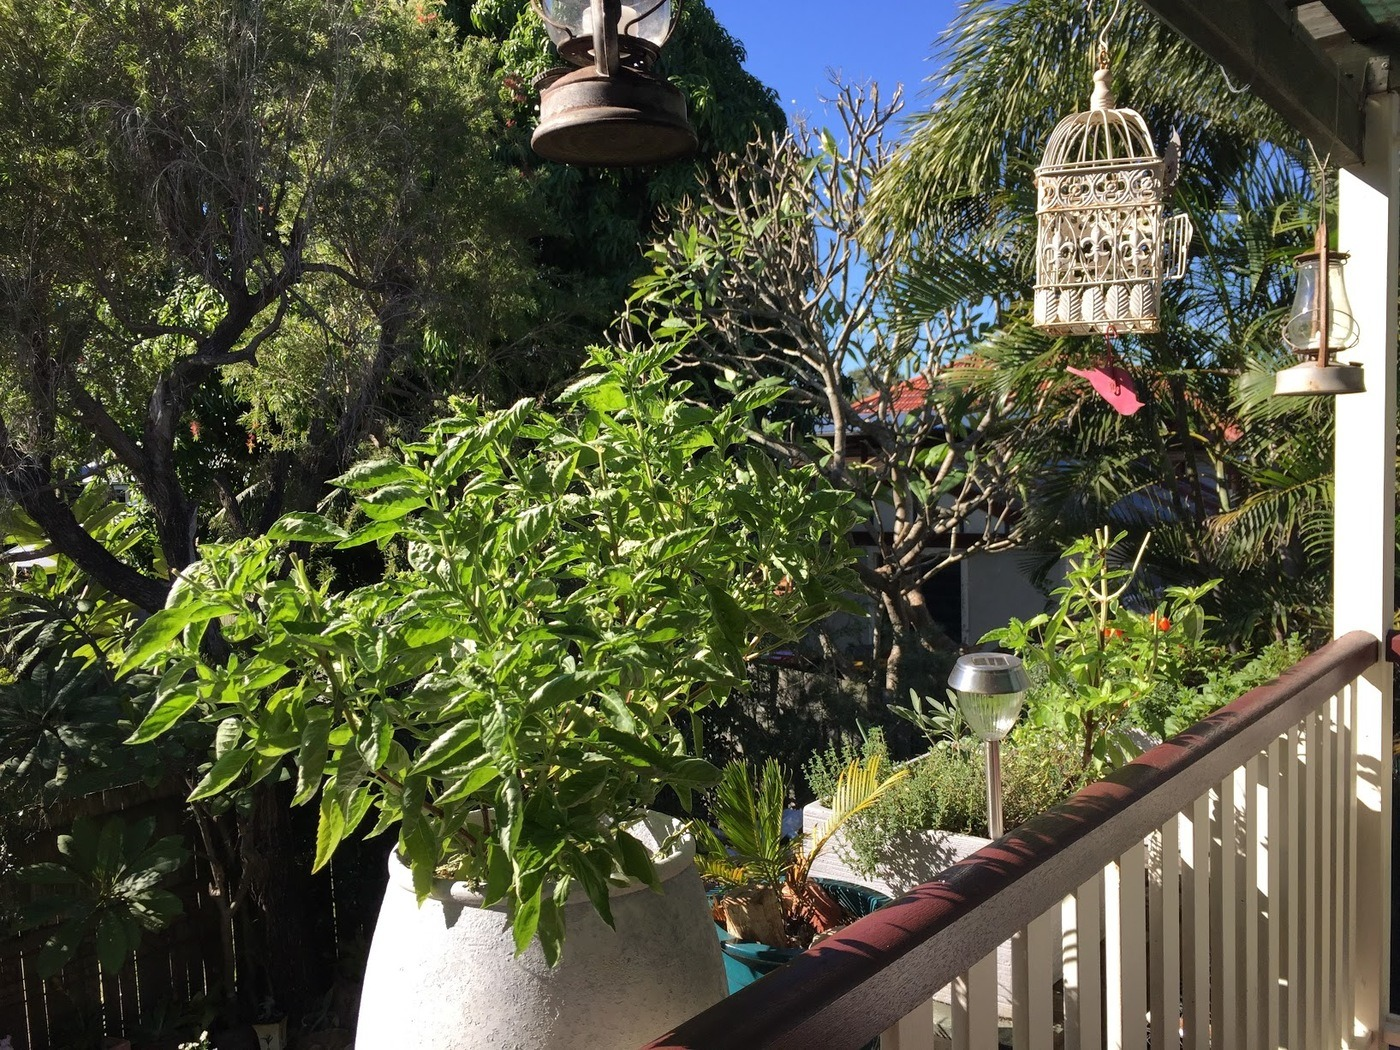 Basil in Large Pot on Verandah